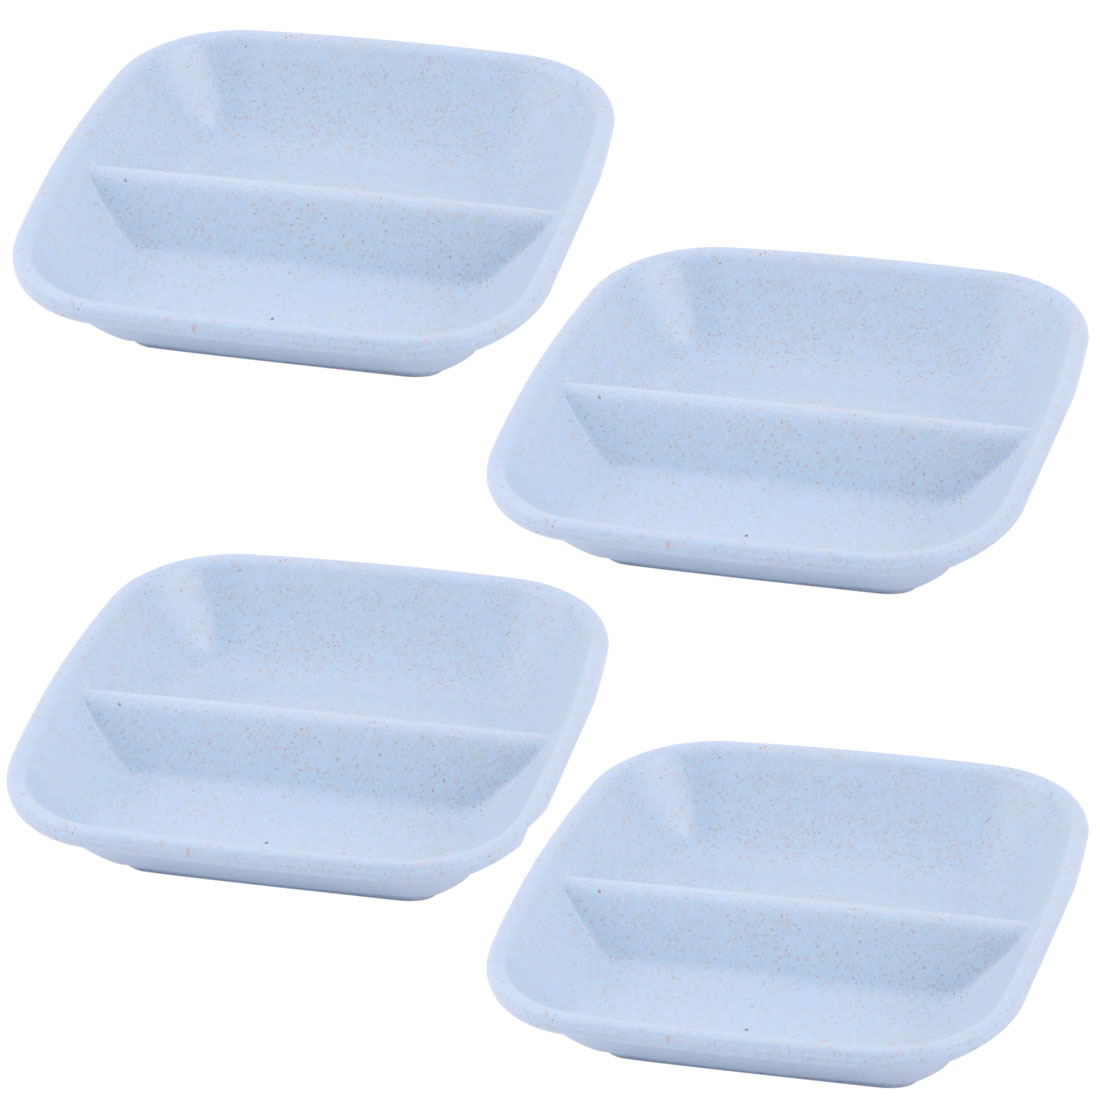 Household Kitchen Plastic Salt Sauce Garlic Pepper Holder Container Dish Blue 4pcs